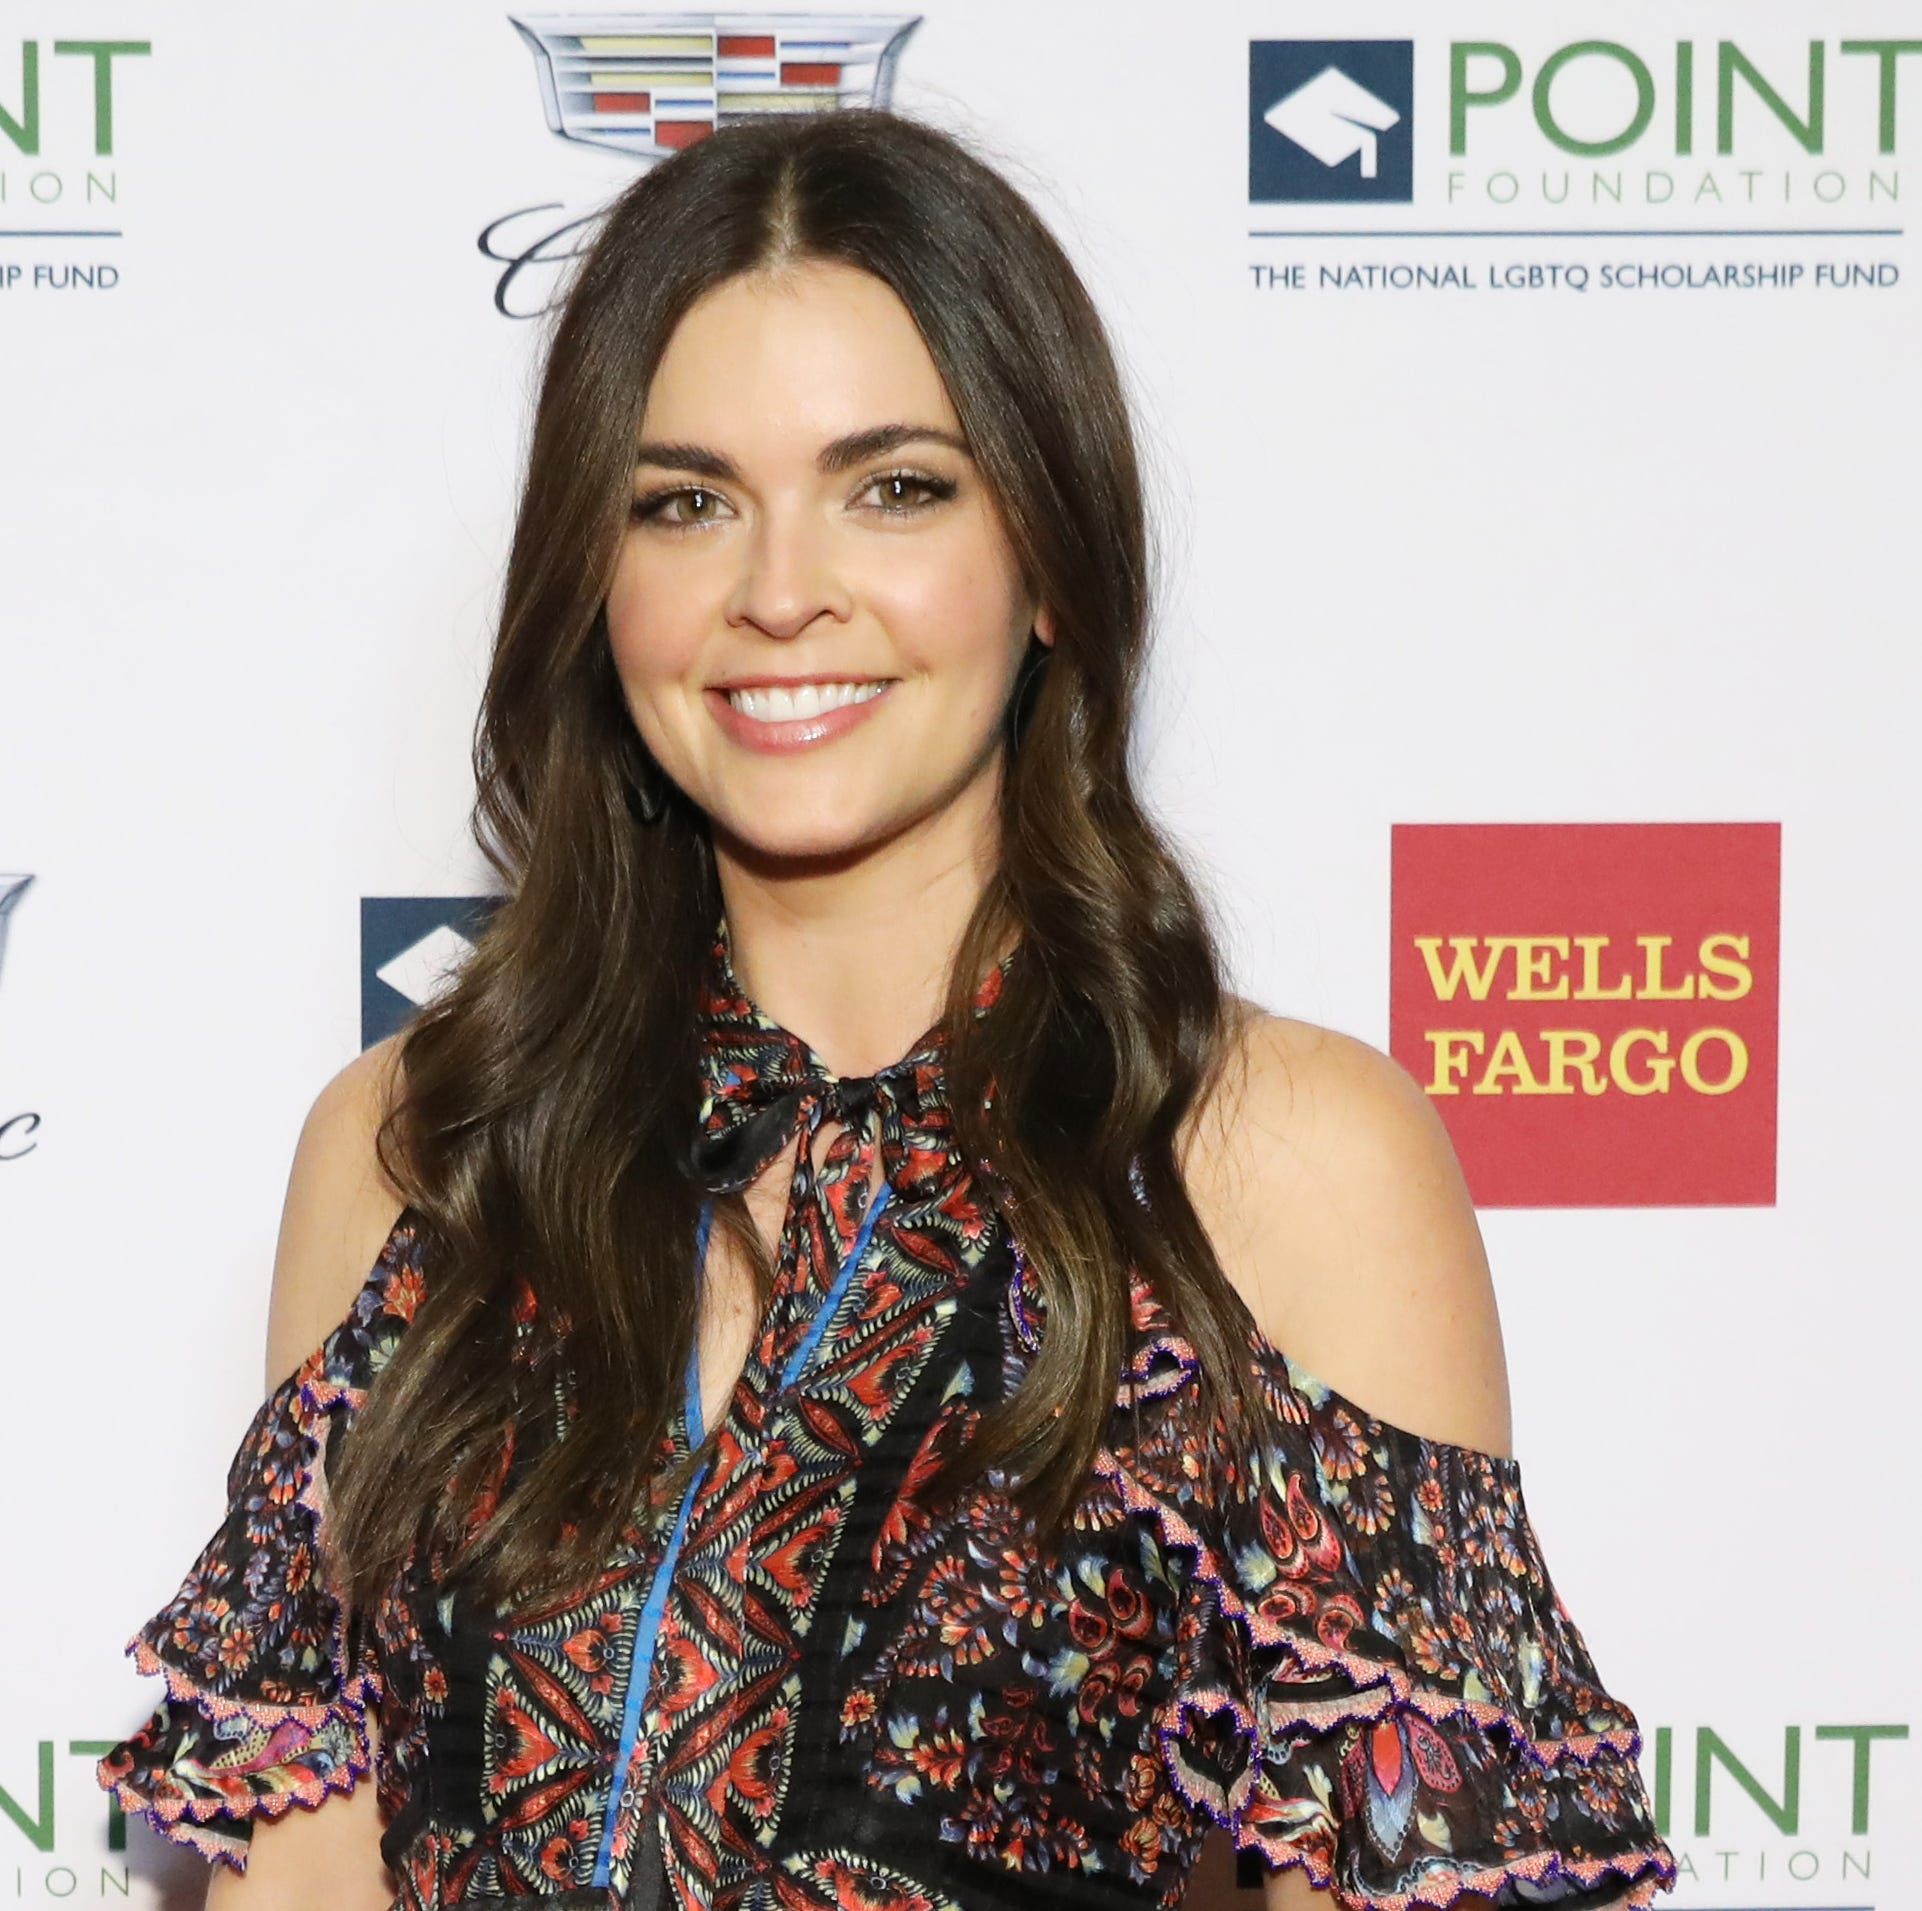 Lee attends Celebrities Support LGBTQ Education at Point Honors Gala New York at The Plaza Hotel on April 08, 2019 in New York City.